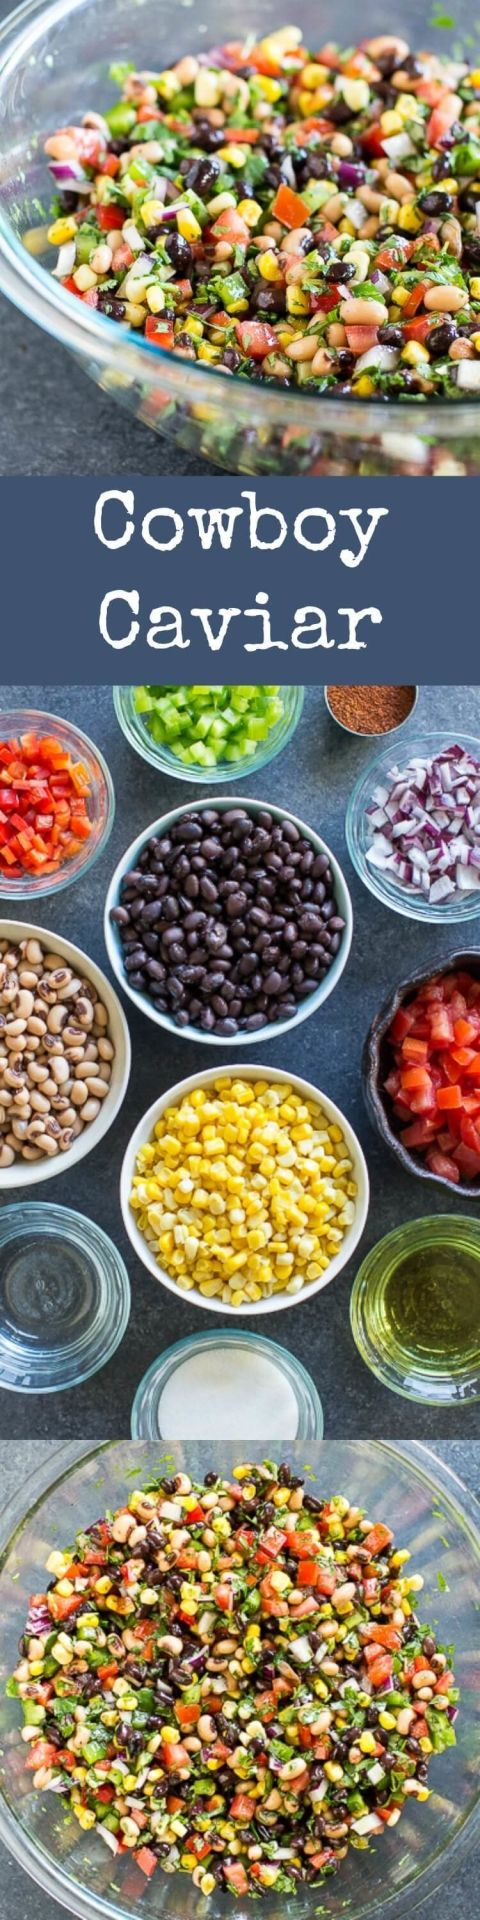 Cowboy Caviar is packed with colorful, fresh ingredients that also happen to be healthy. Makes a great salsa, dip, or salad at your next party or barbecue! Naturally vegan and gluten free.: